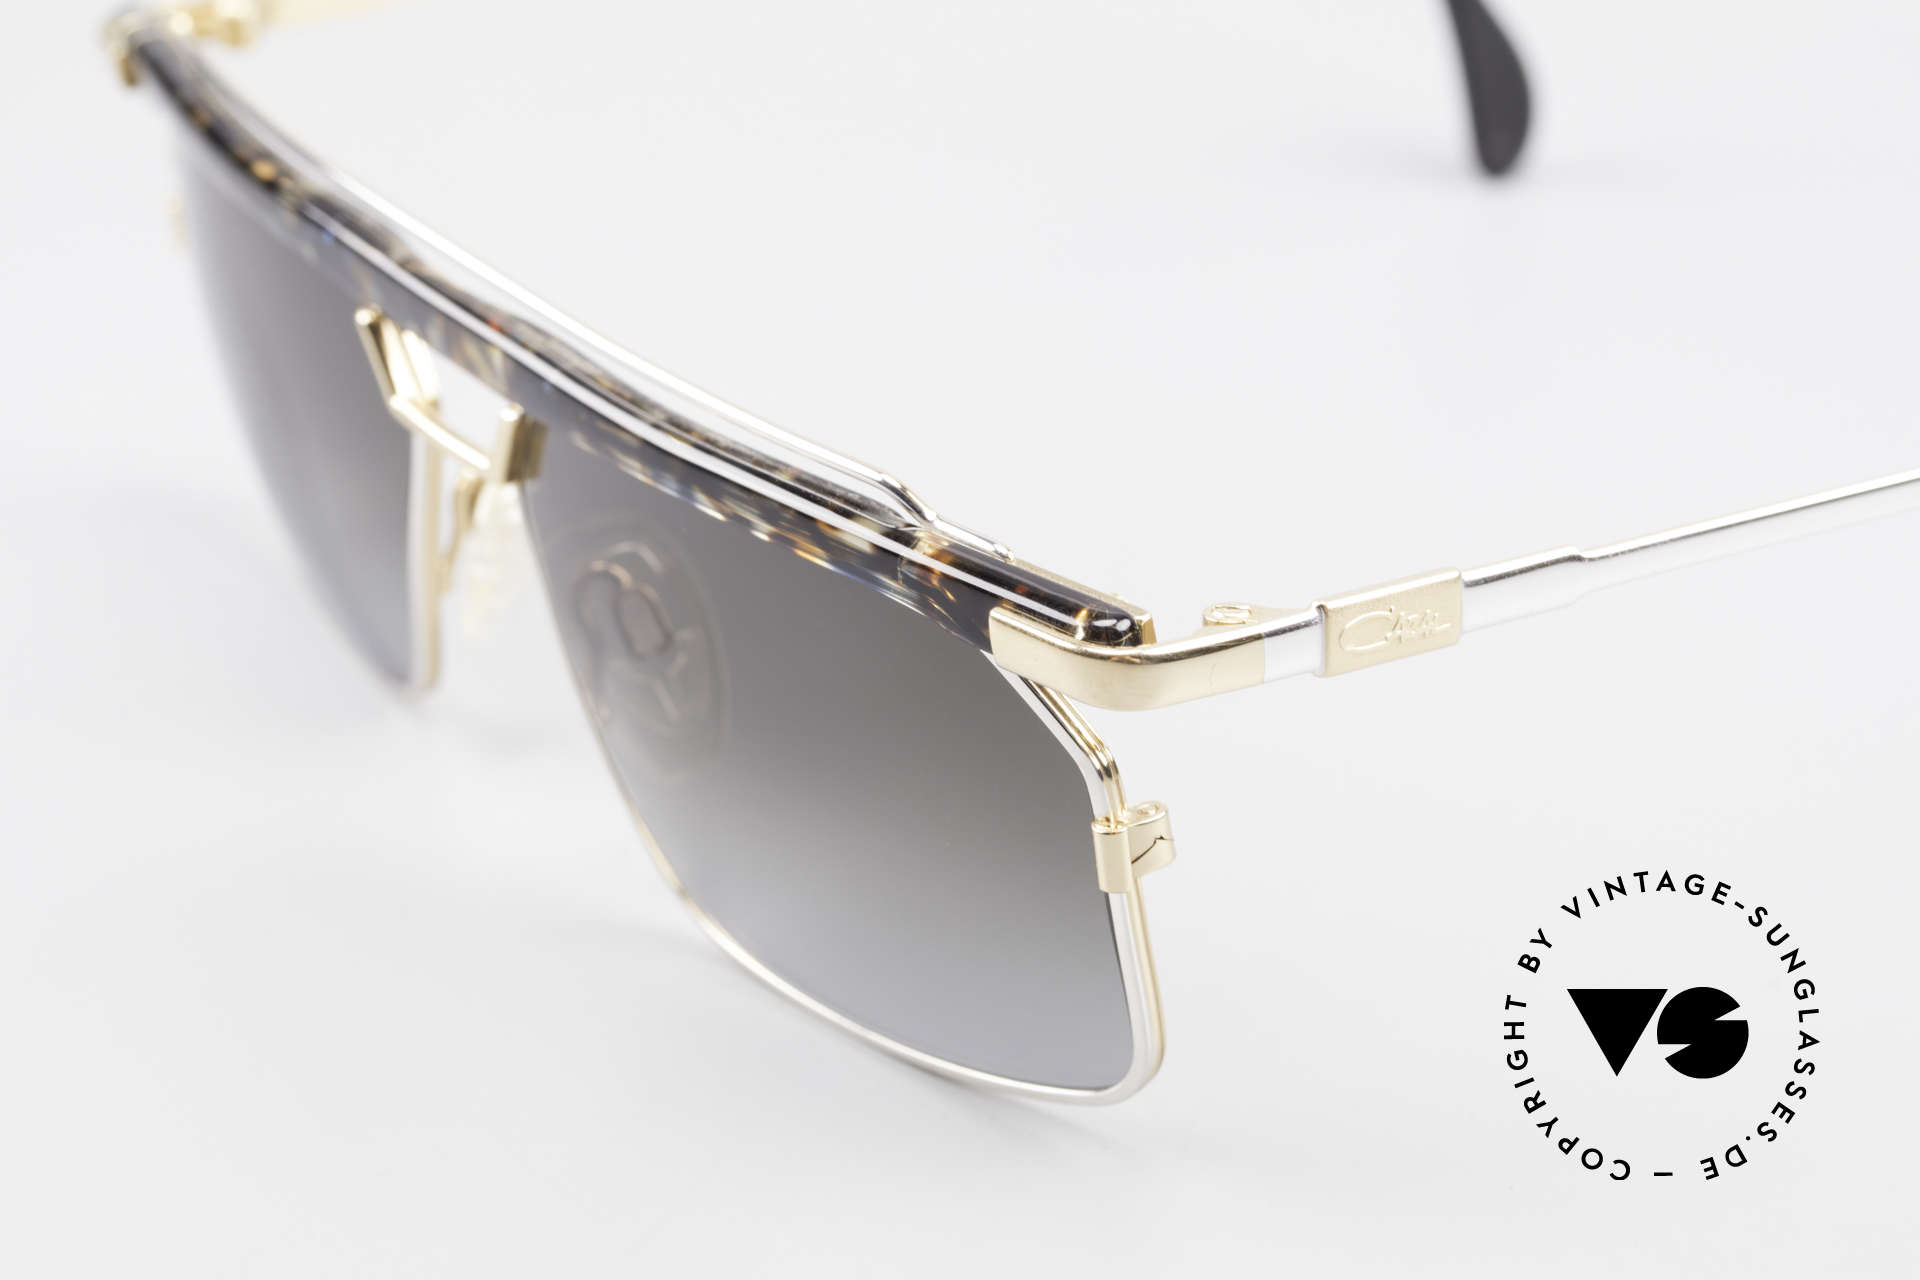 Cazal 752 Extraordinary Vintage Shades, great metalwork and overall craftmanship; Top!, Made for Men